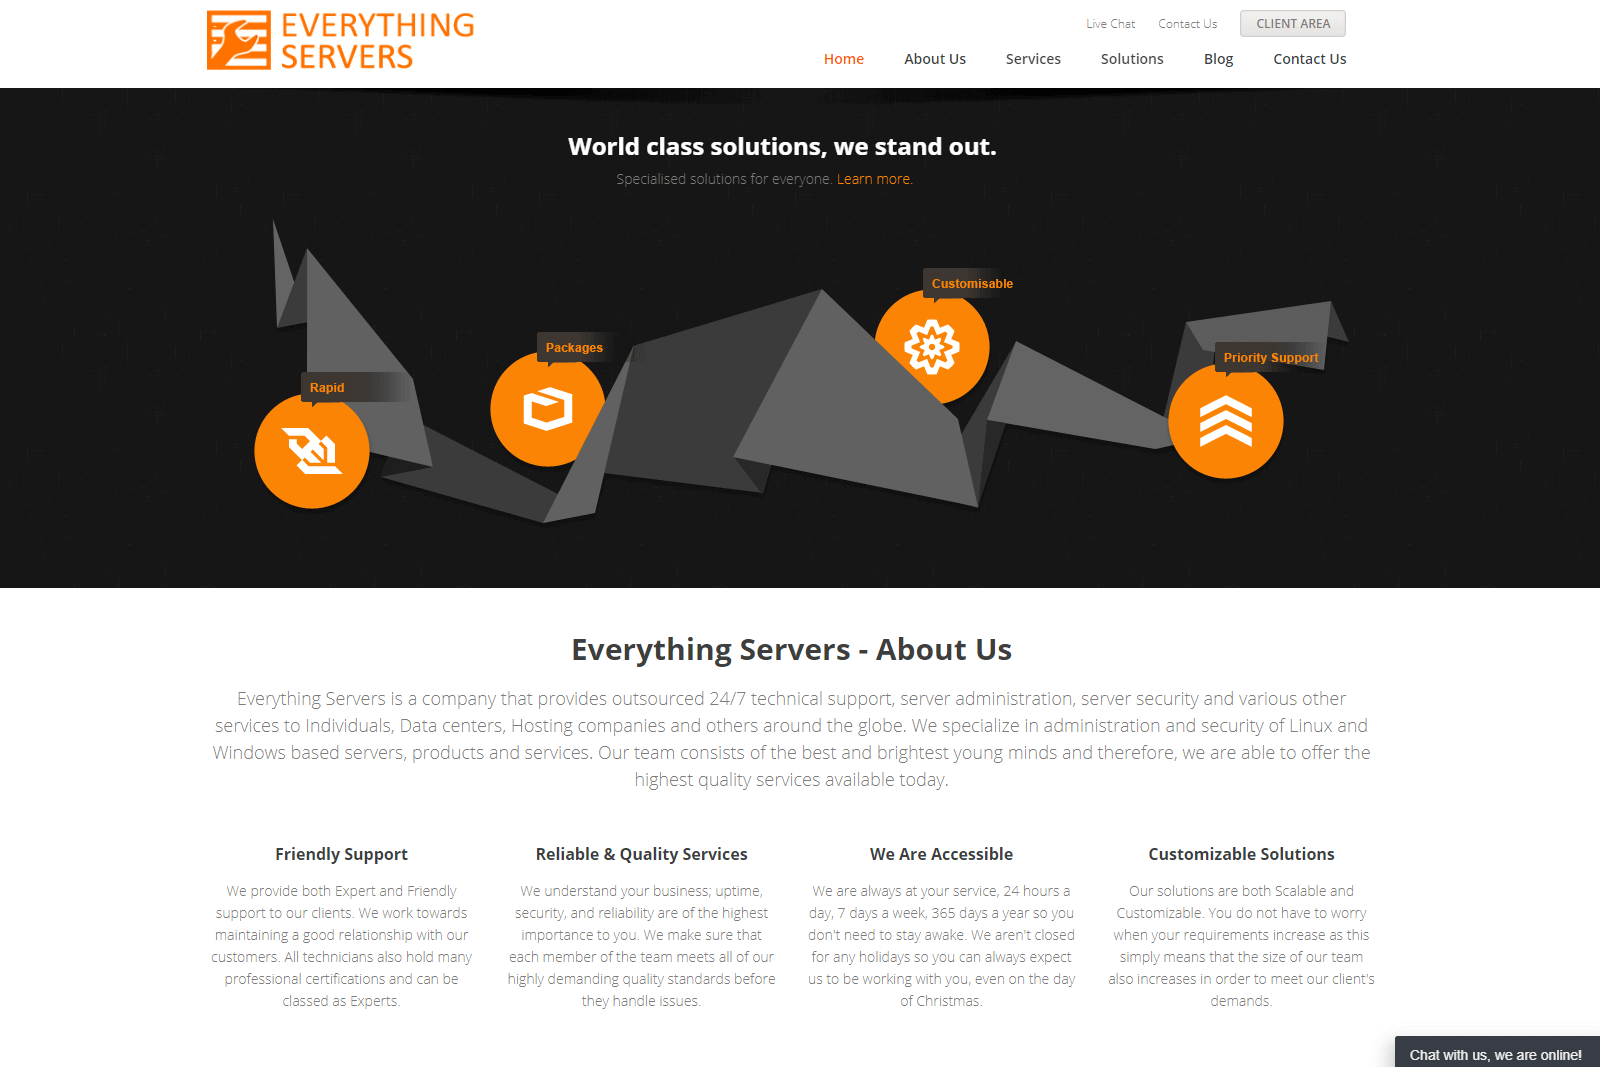 Everything Servers Website Portfolio